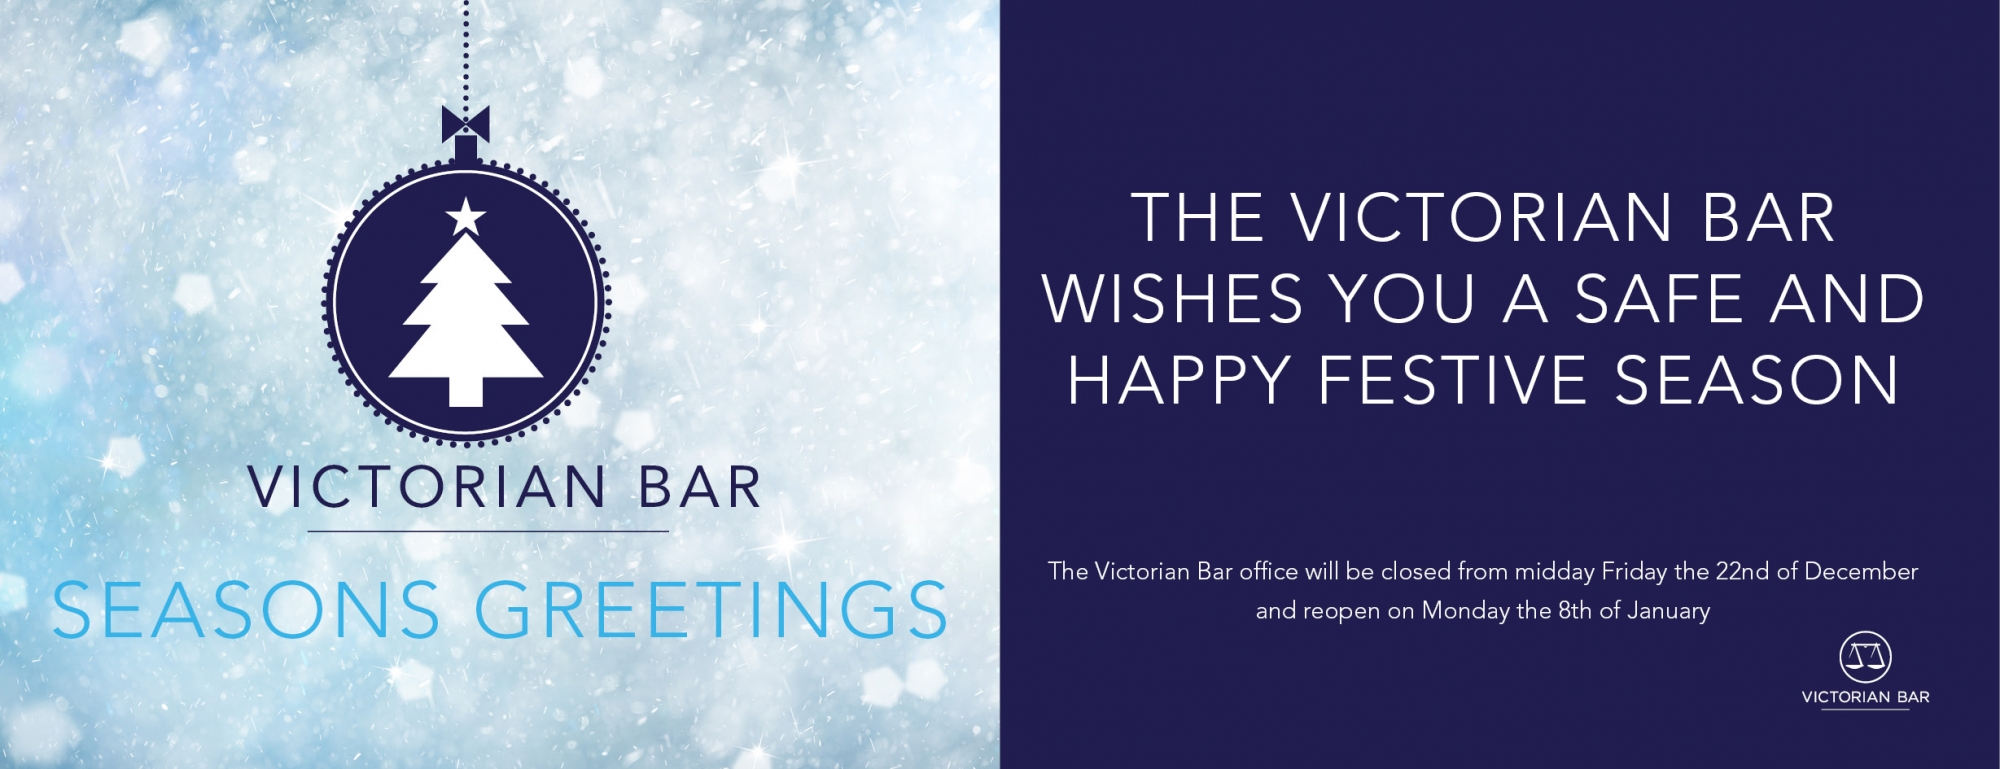 Seasons Greetings 2017 Victorian Bar